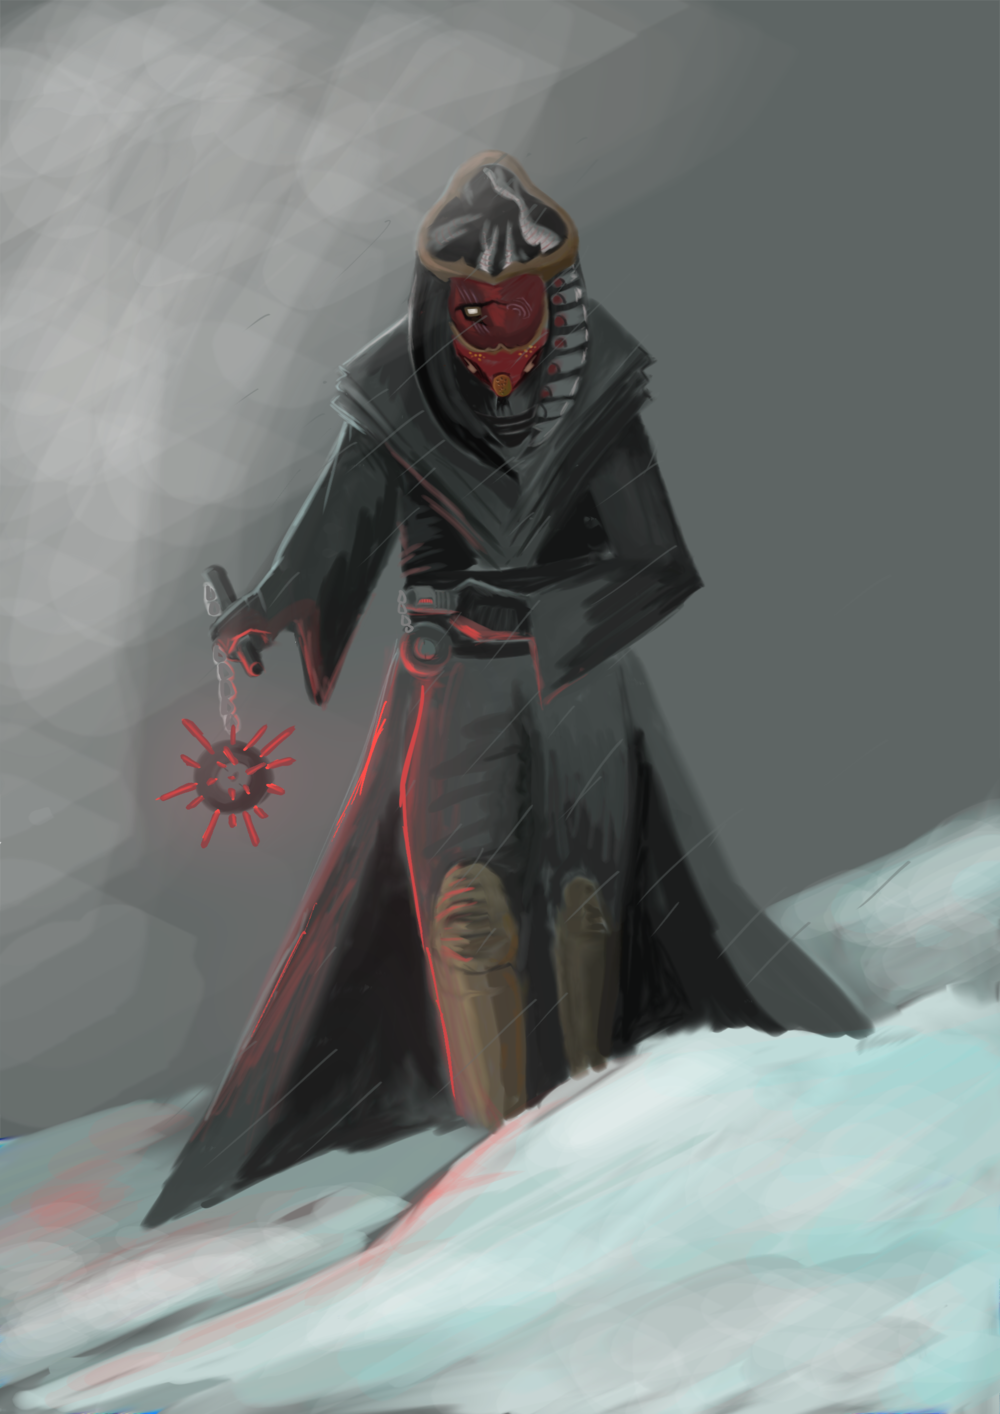 Star Wars sith lord character concept